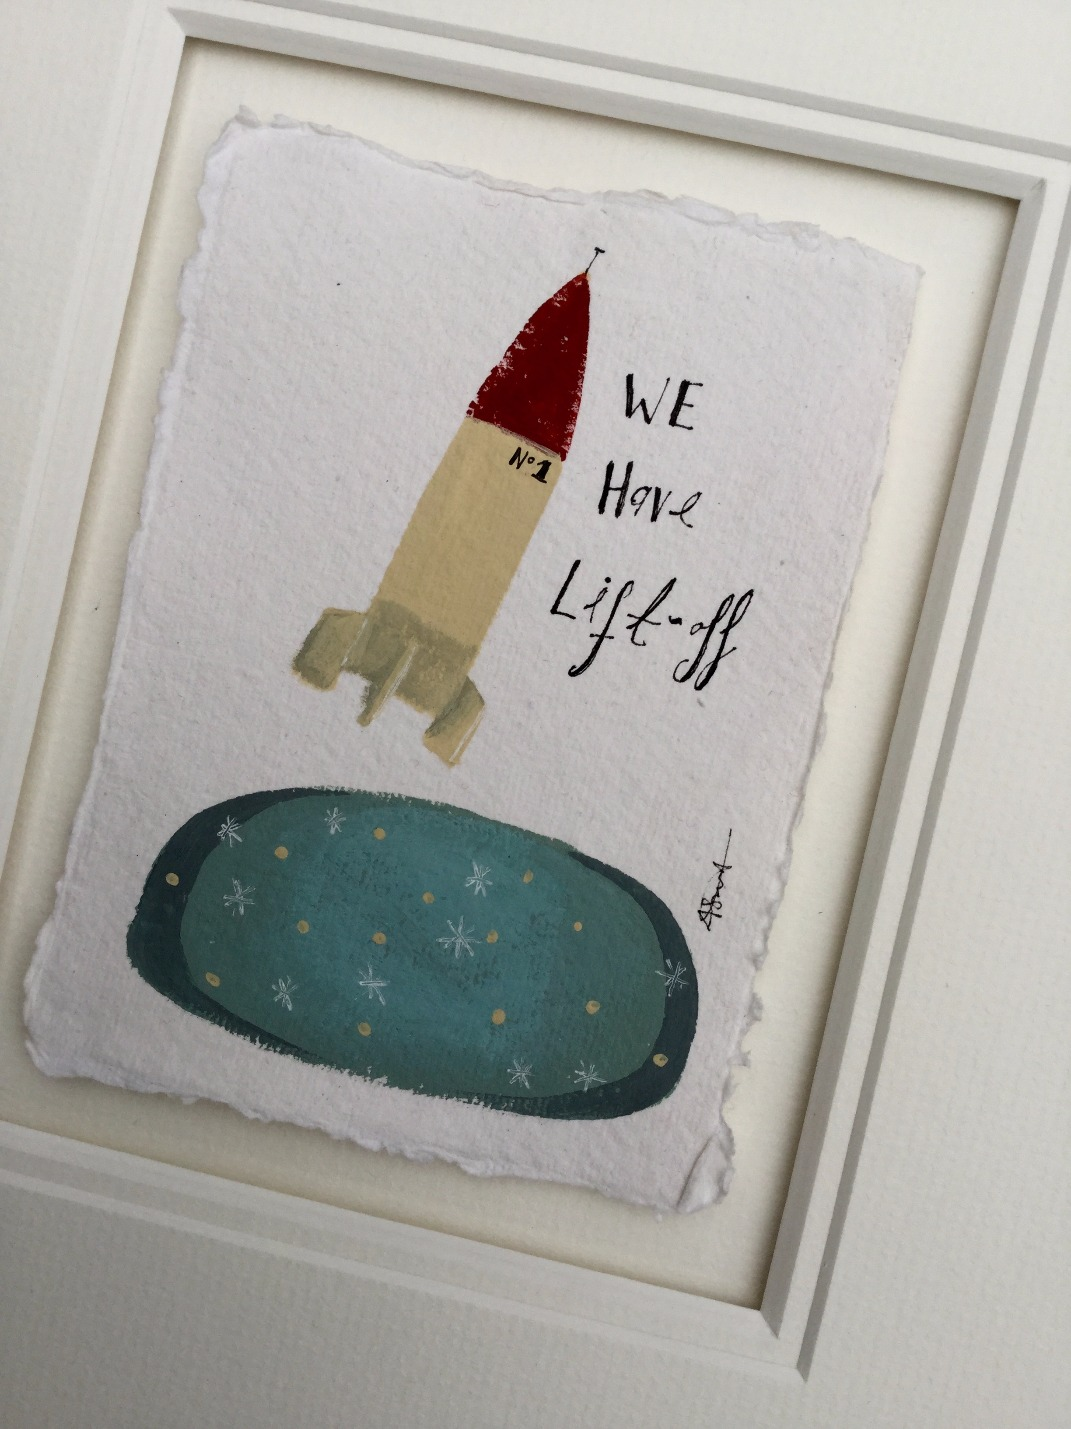 We Have Lift Off by Angela Smyth